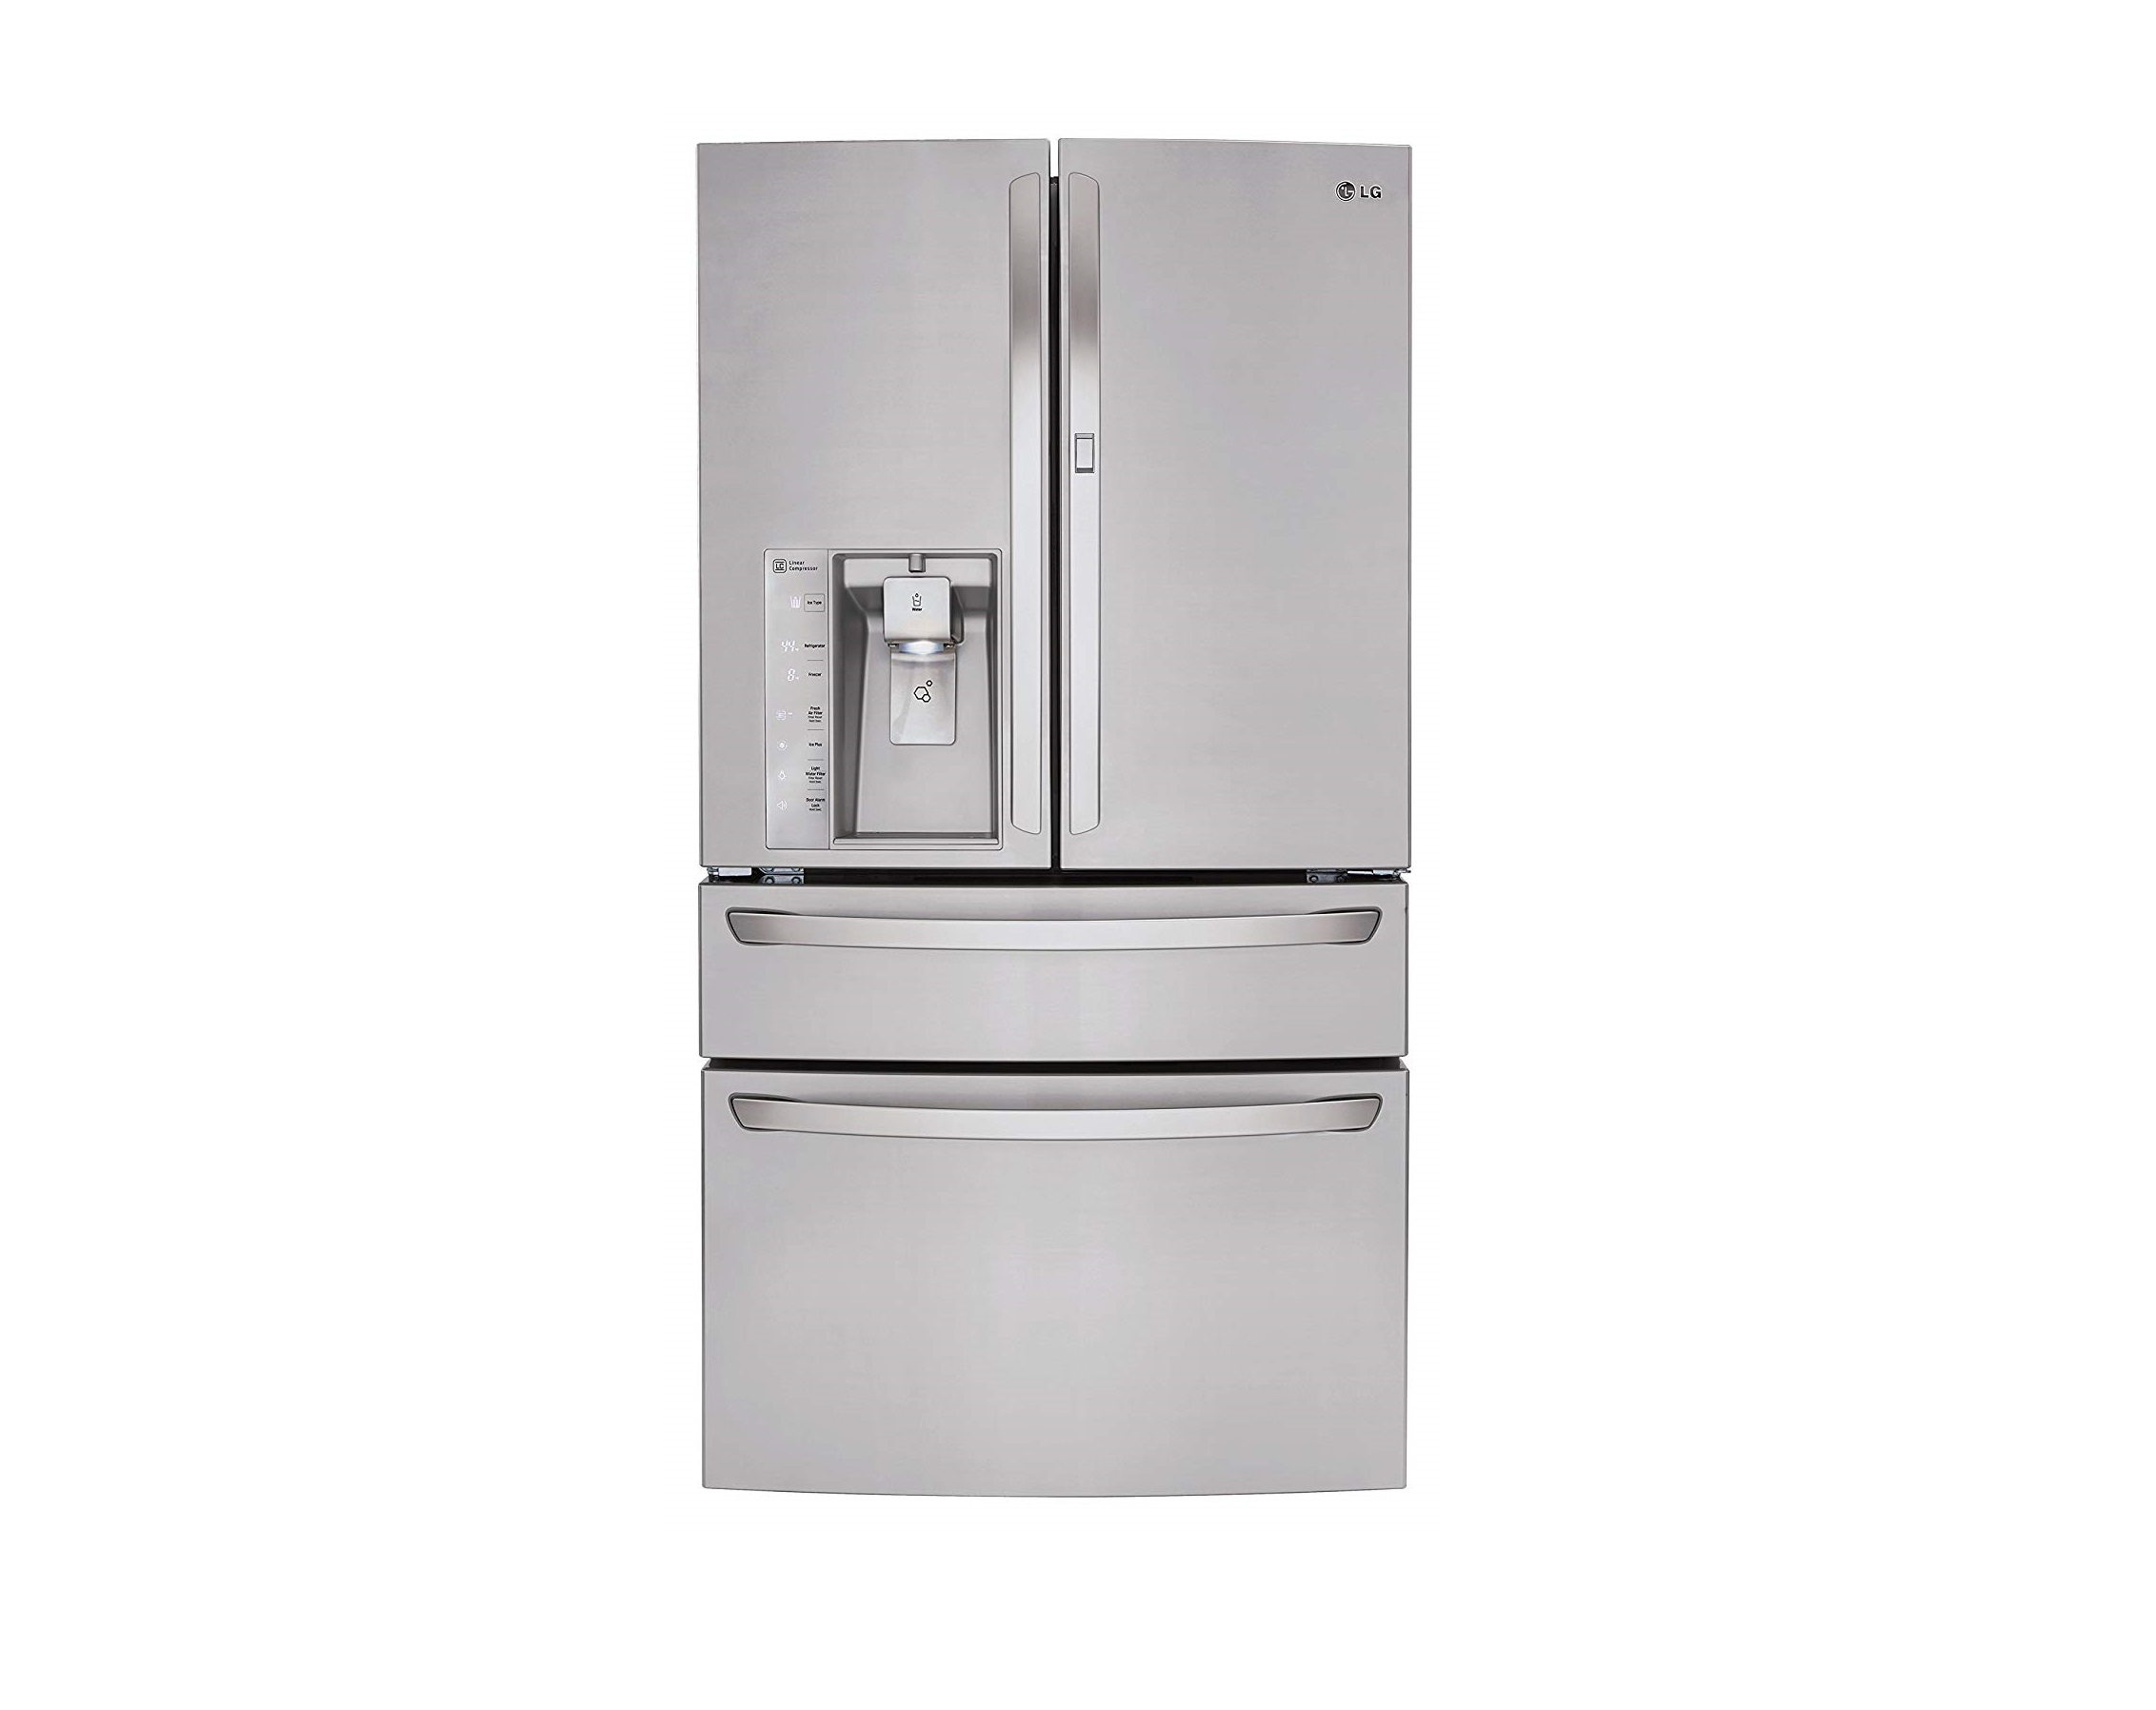 Top 5 Best Freezer Refrigerator every family should have 2020 Reviews